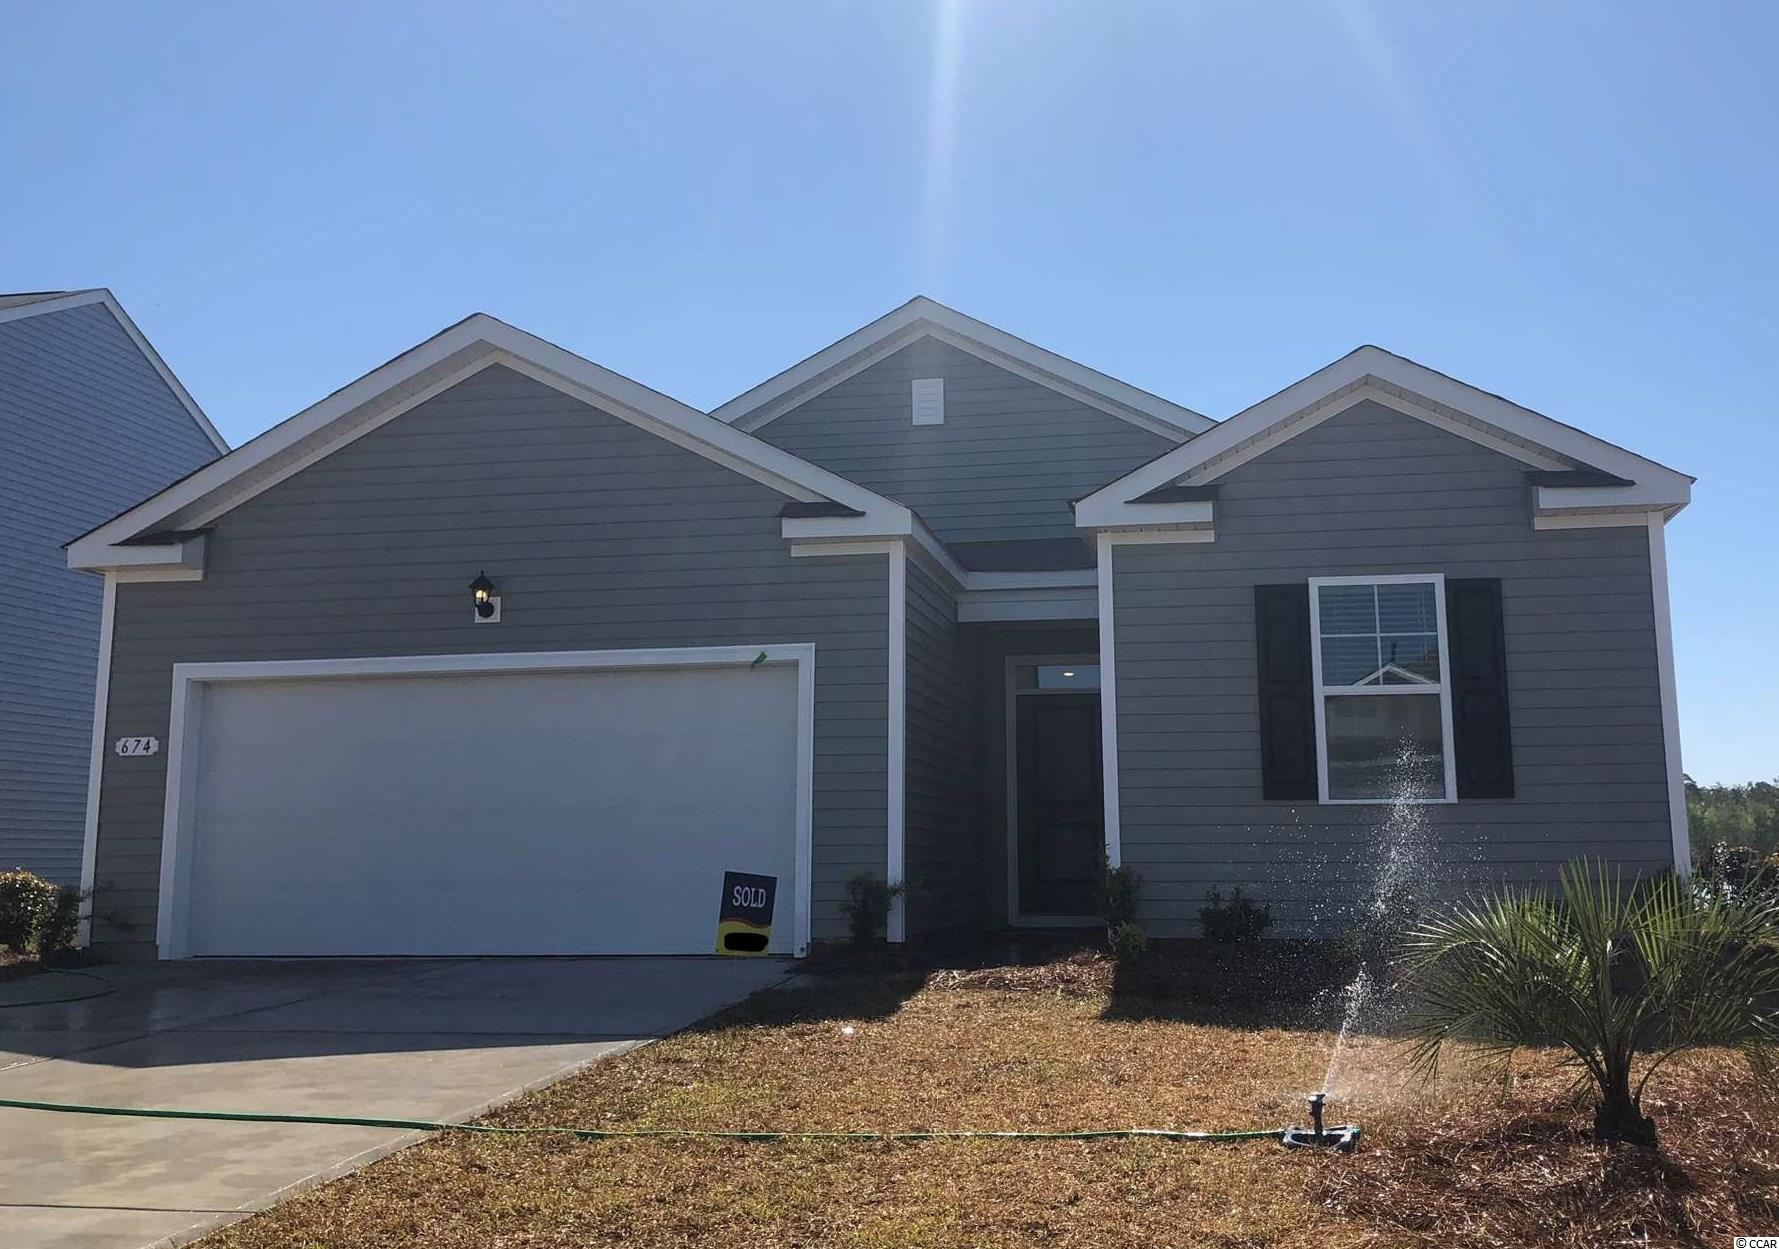 """Oyster Bluff is now selling! Brand new natural gas community just minutes away from shopping, dining, and the beach. Why pay rent? This Macon floorplan offers three bedrooms all on one level. Primary bedroom suite with a big walk-in closet and private bath with dual vanity and 5 ft. shower! Nice, open flow between kitchen and living areas is great for entertaining around the large breakfast bar while low maintenance laminate flooring gives the look of wood with easy care and cleanup! Granite counters in the kitchen, 36"""" white painted cabinetry, stainless Whirlpool appliances, and a great size pantry. Sliding glass doors off the dining area lead to the rear covered porch offering a seamless transition from indoor to outdoor living. It gets better- this is America's Smart Home! Control the thermostat, front door light and lock, and video doorbell from your smartphone or with voice commands to Alexa. Tankless gas water heater and a 2-car garage with garage door opener also included.   *Photos are of a similar Macon home. (Home and community information, including pricing, included features, terms, availability and amenities, are subject to change prior to sale at any time without notice or obligation. Square footages are approximate. Pictures, photographs, colors, features, and sizes are for illustration purposes only and will vary from the homes as built. Equal housing opportunity builder.)"""